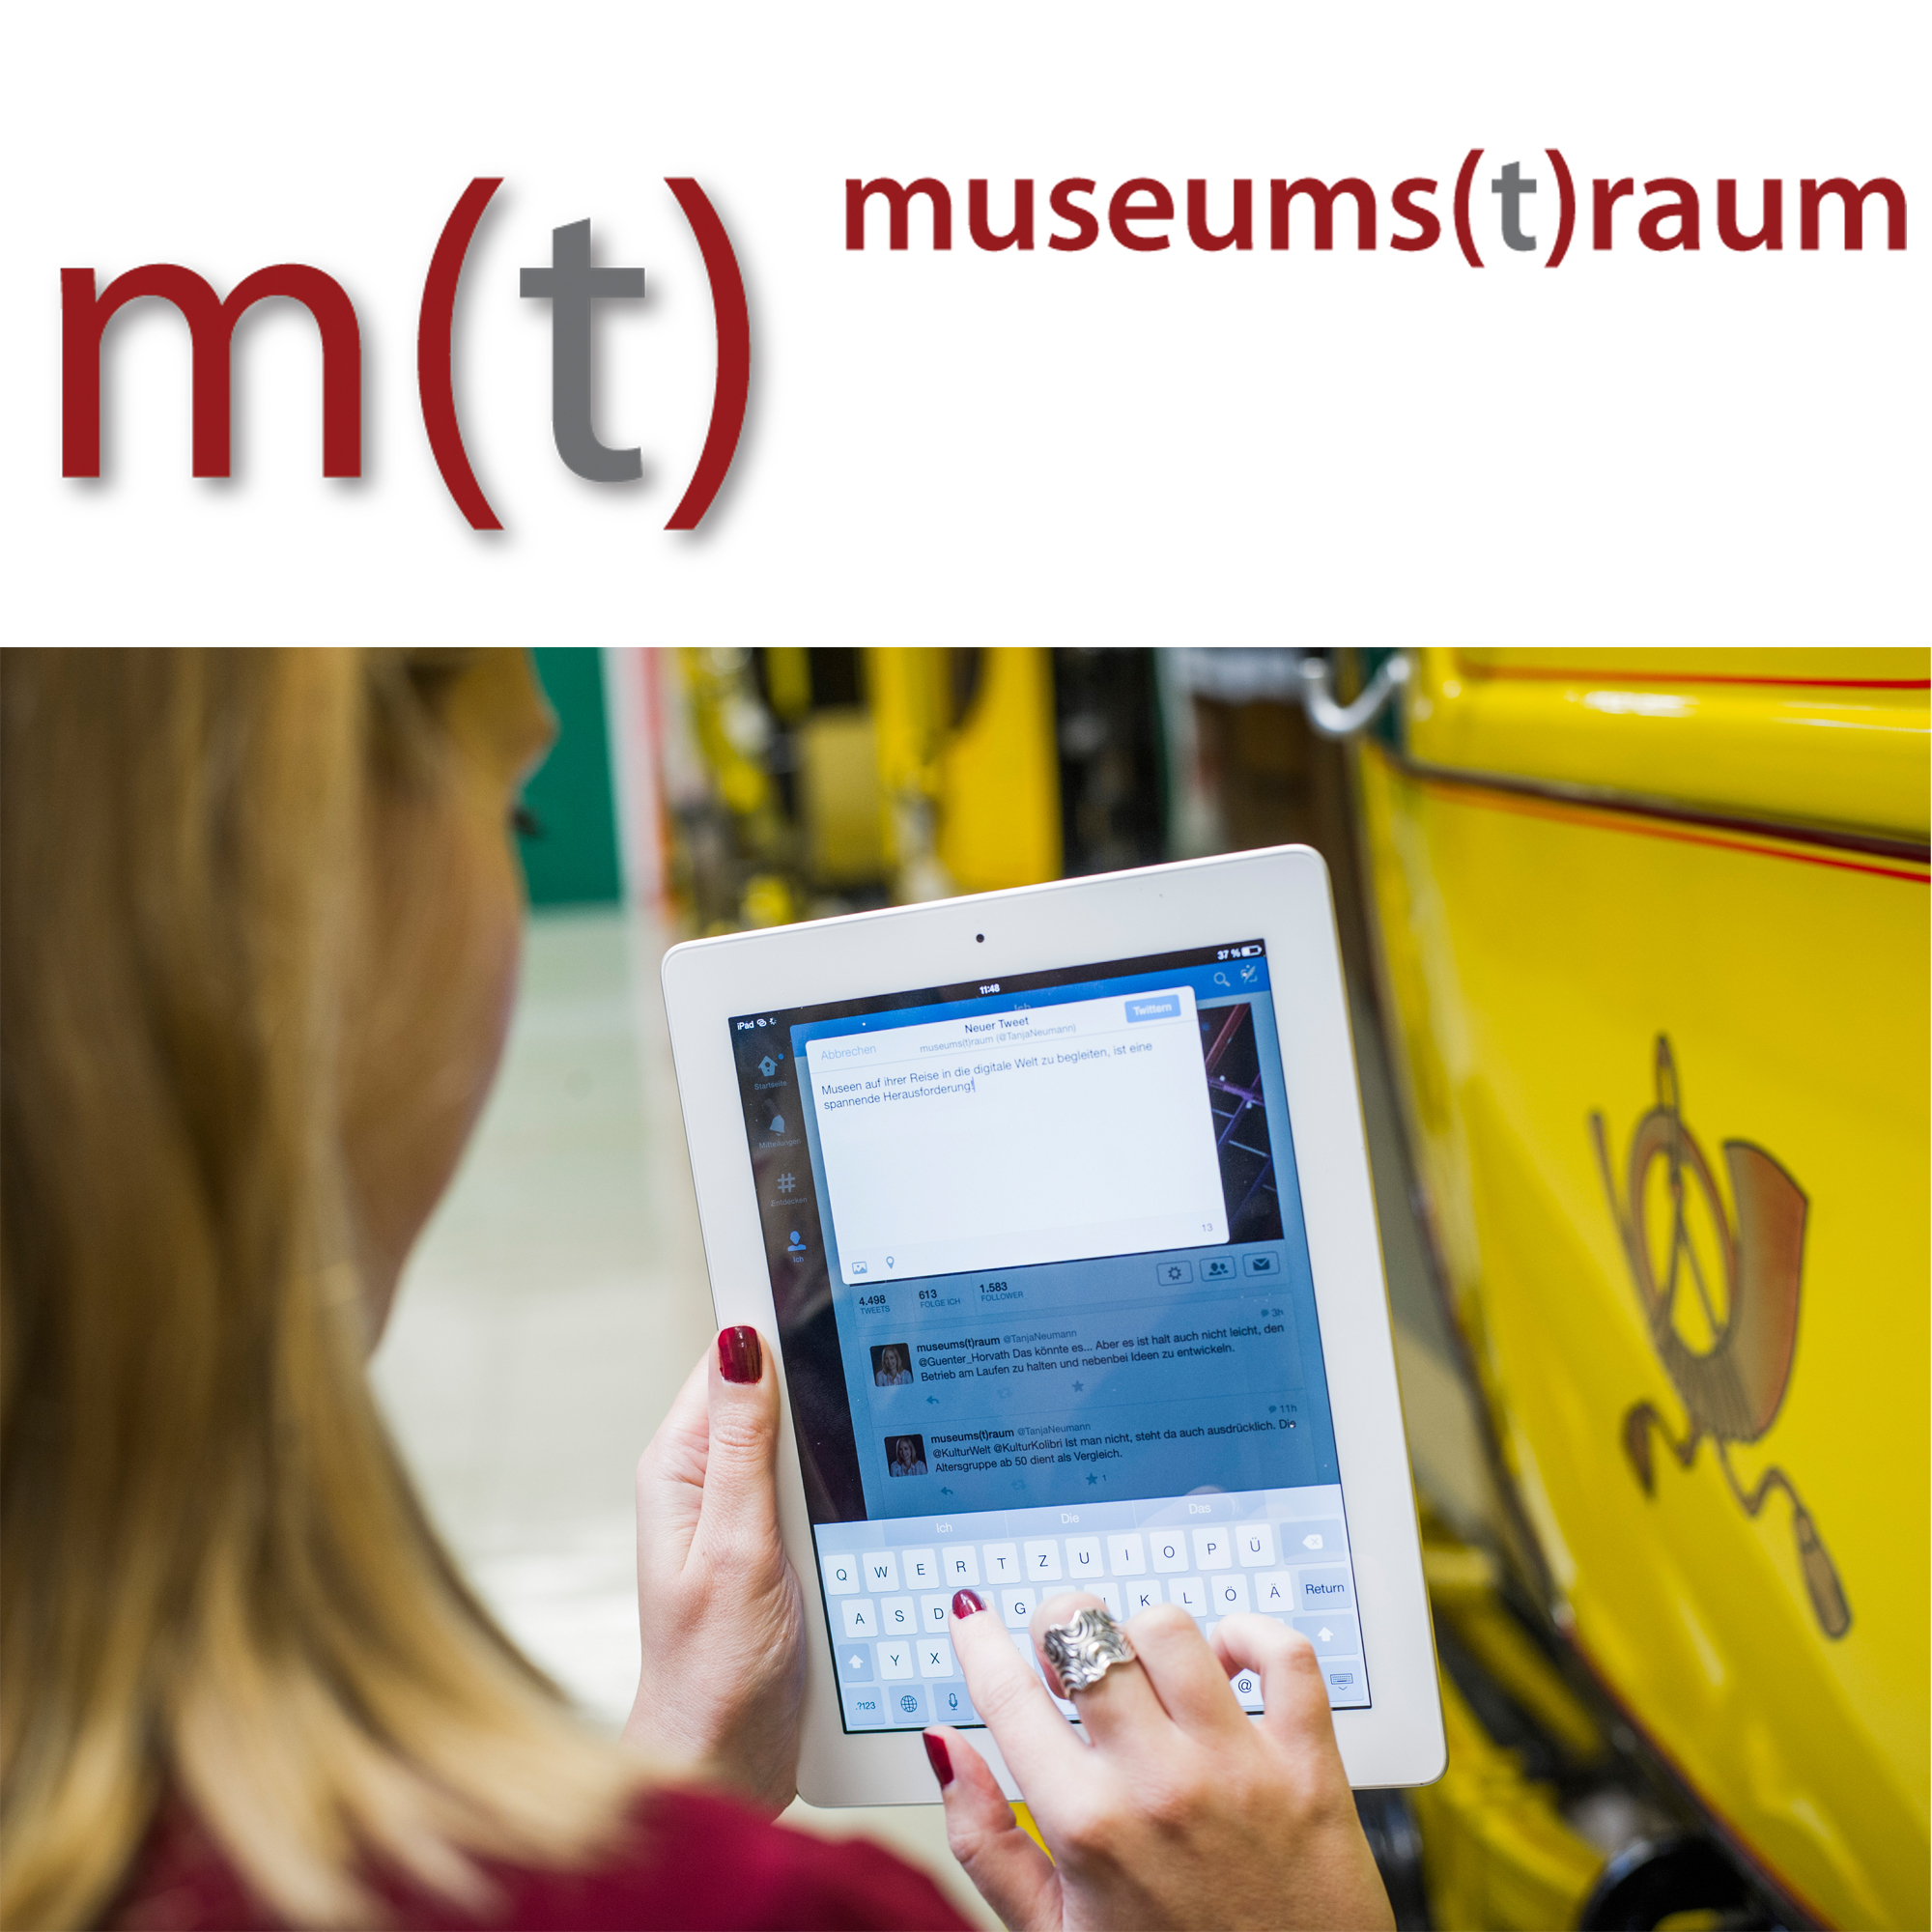 museums(t)raum